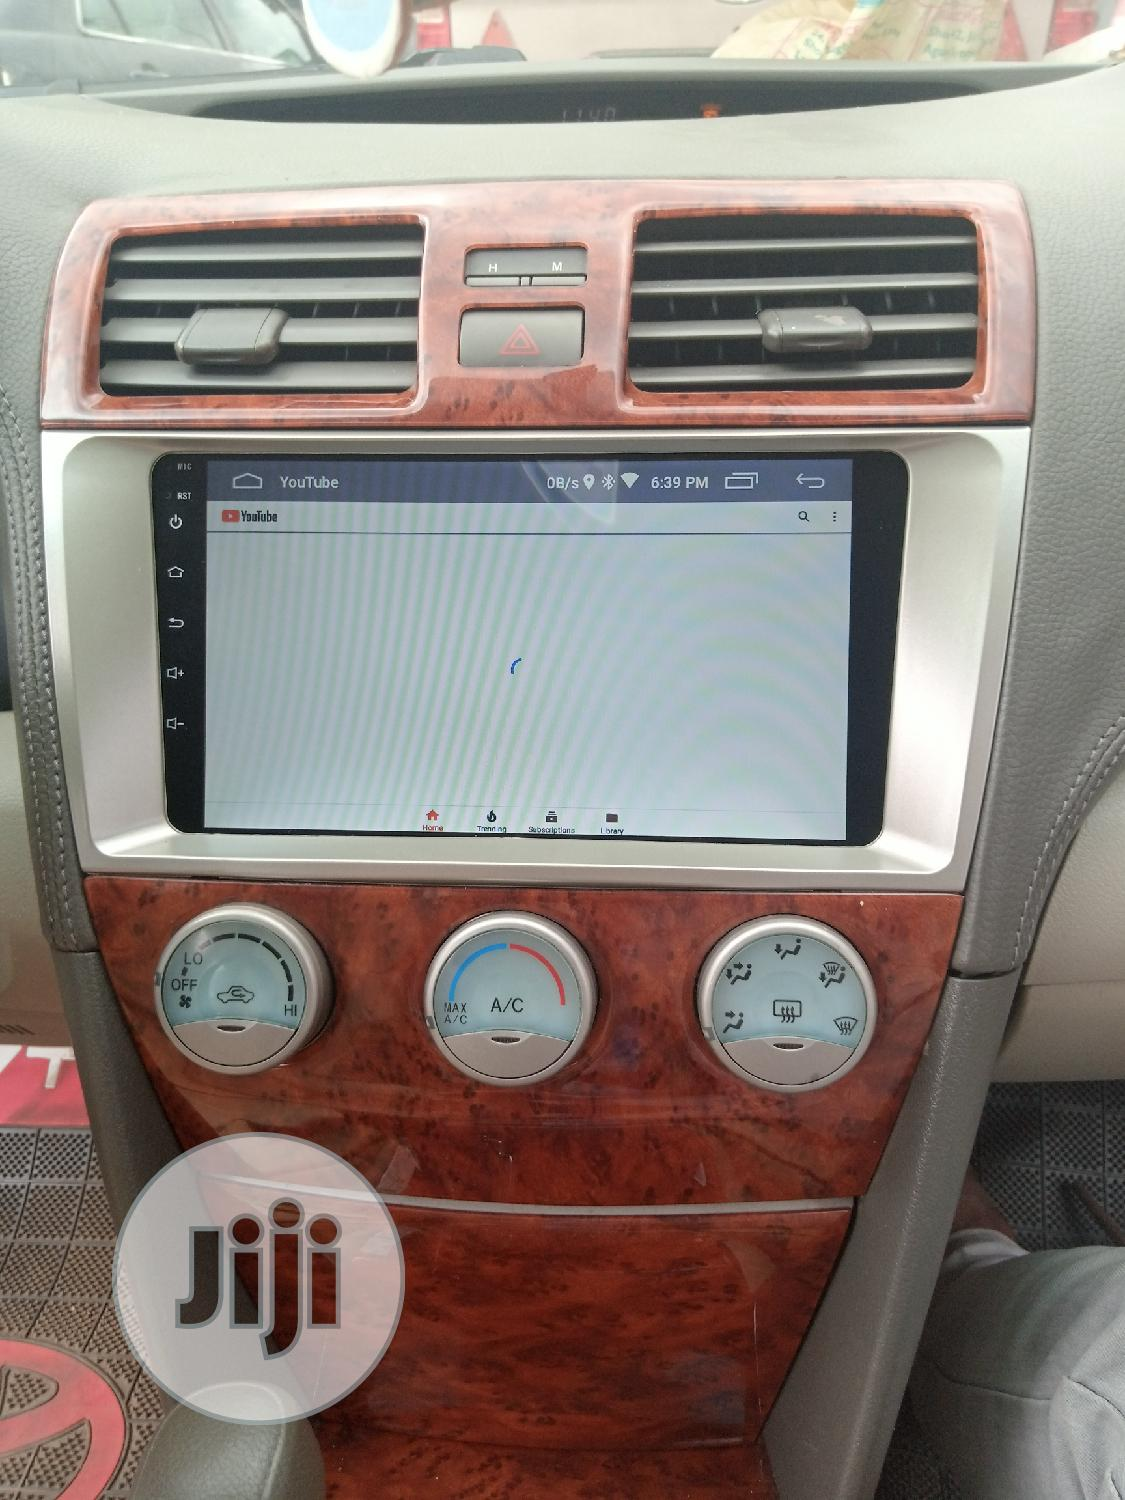 Toyota Camry Android Dvd Player